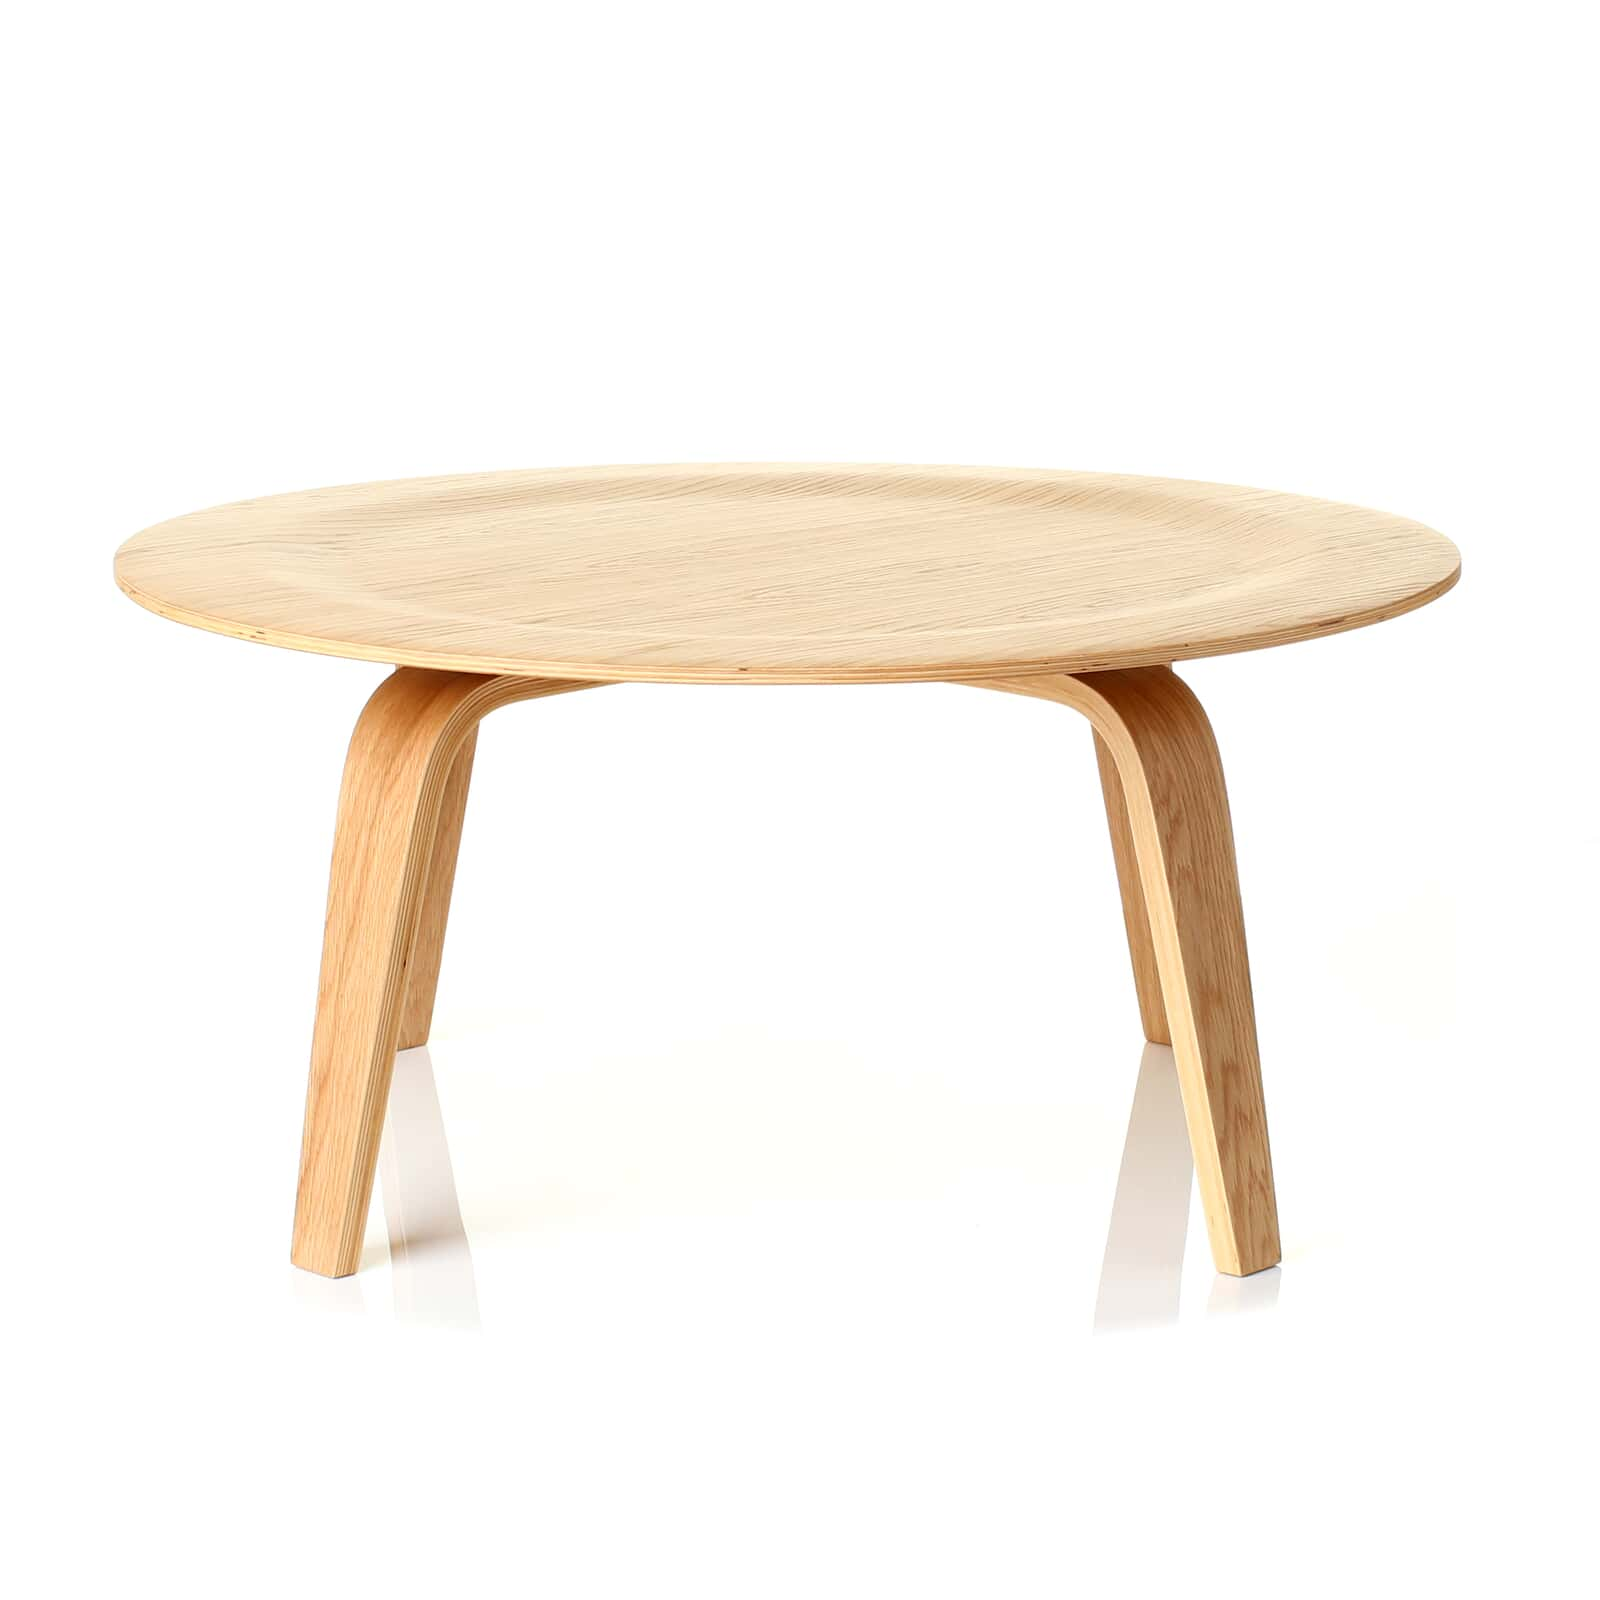 Outstanding Plywood Coffee Table Download Free Architecture Designs Scobabritishbridgeorg